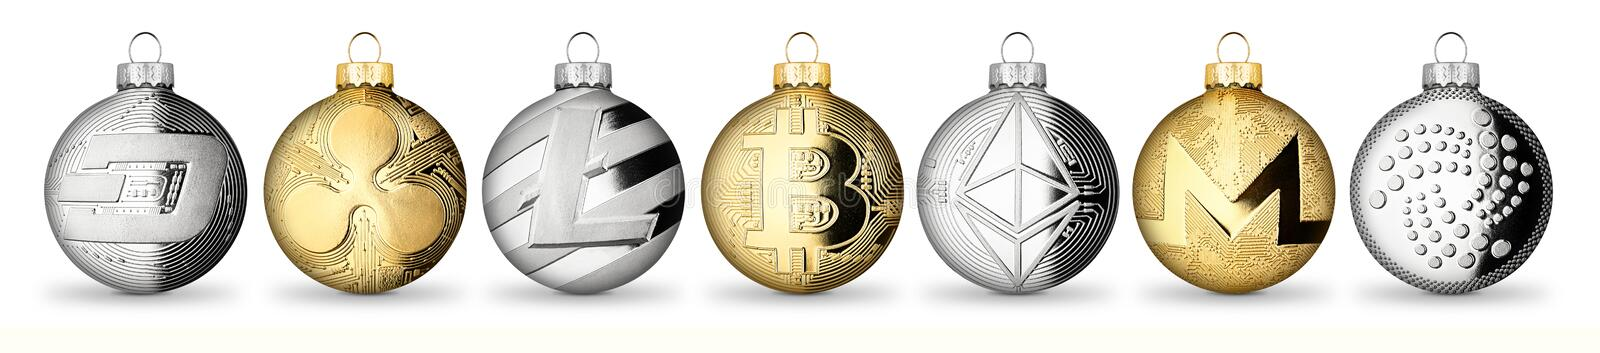 Crypto currency coin christmas xmas ball bauble set collection g stock images